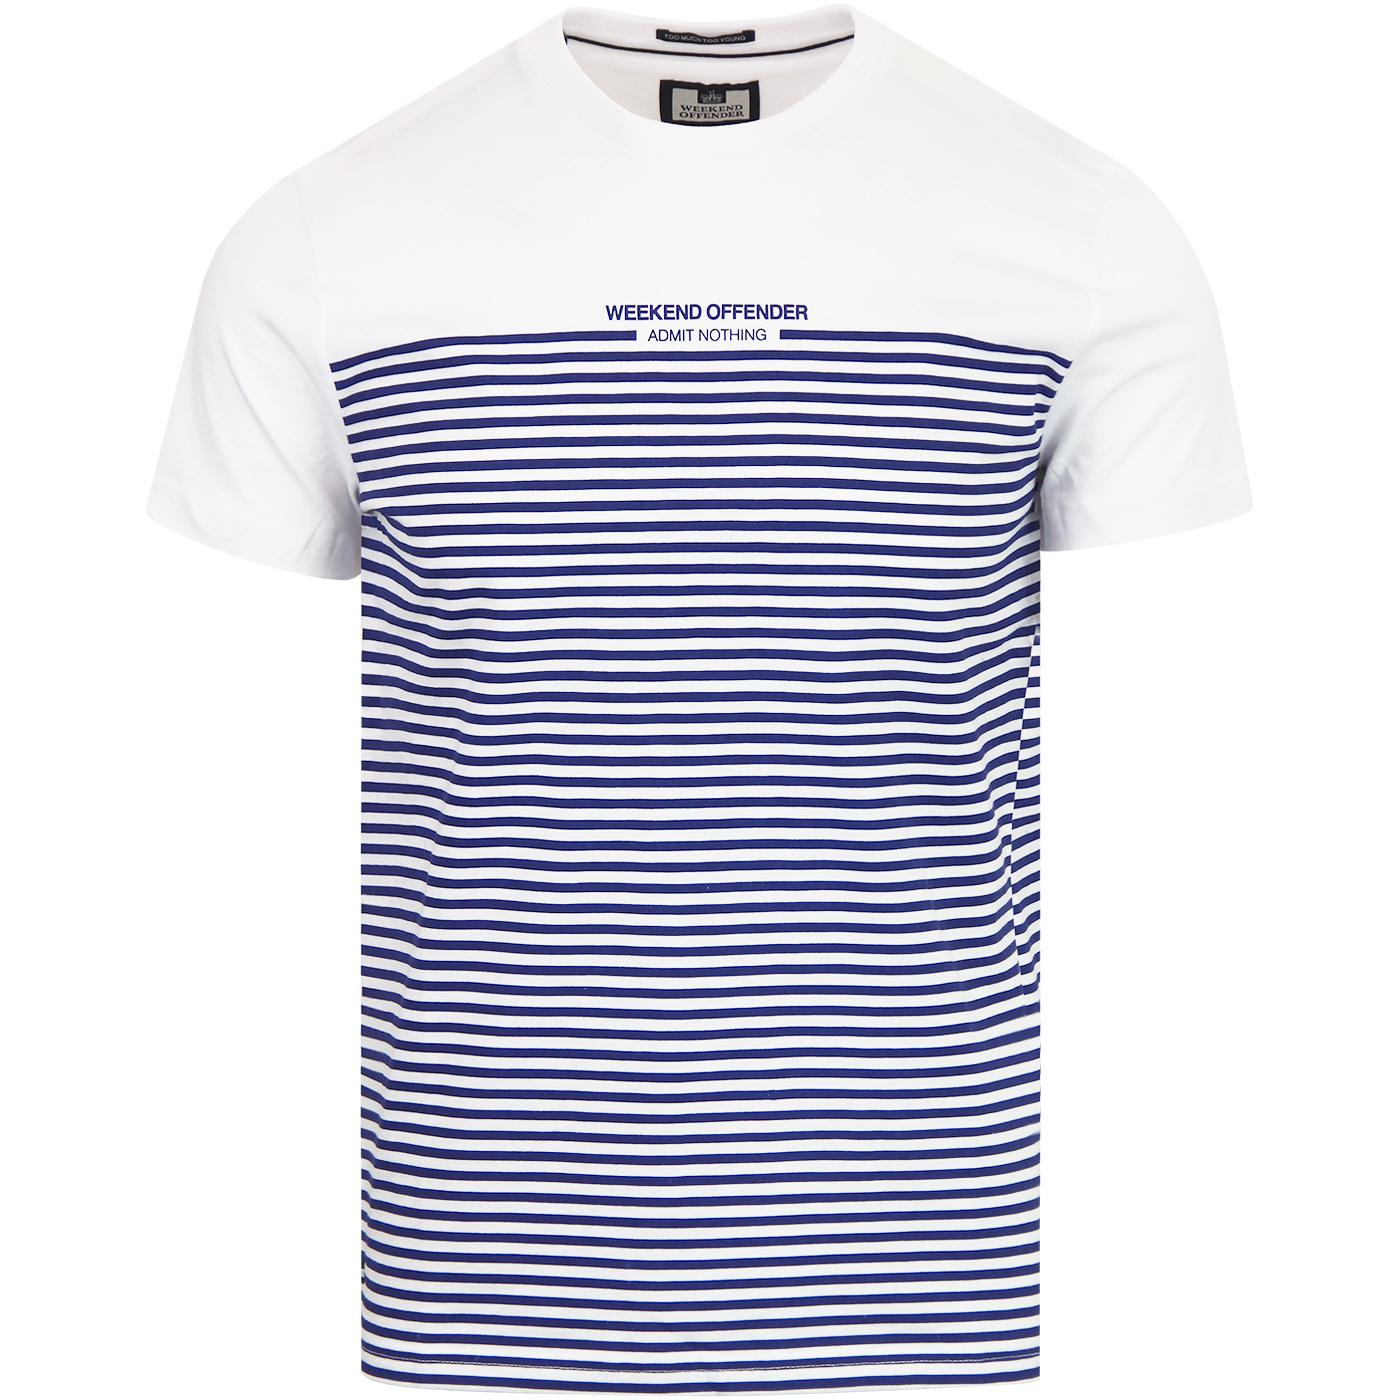 Half Stripes WEEKEND OFFENDER Retro Mod Stripe Tee